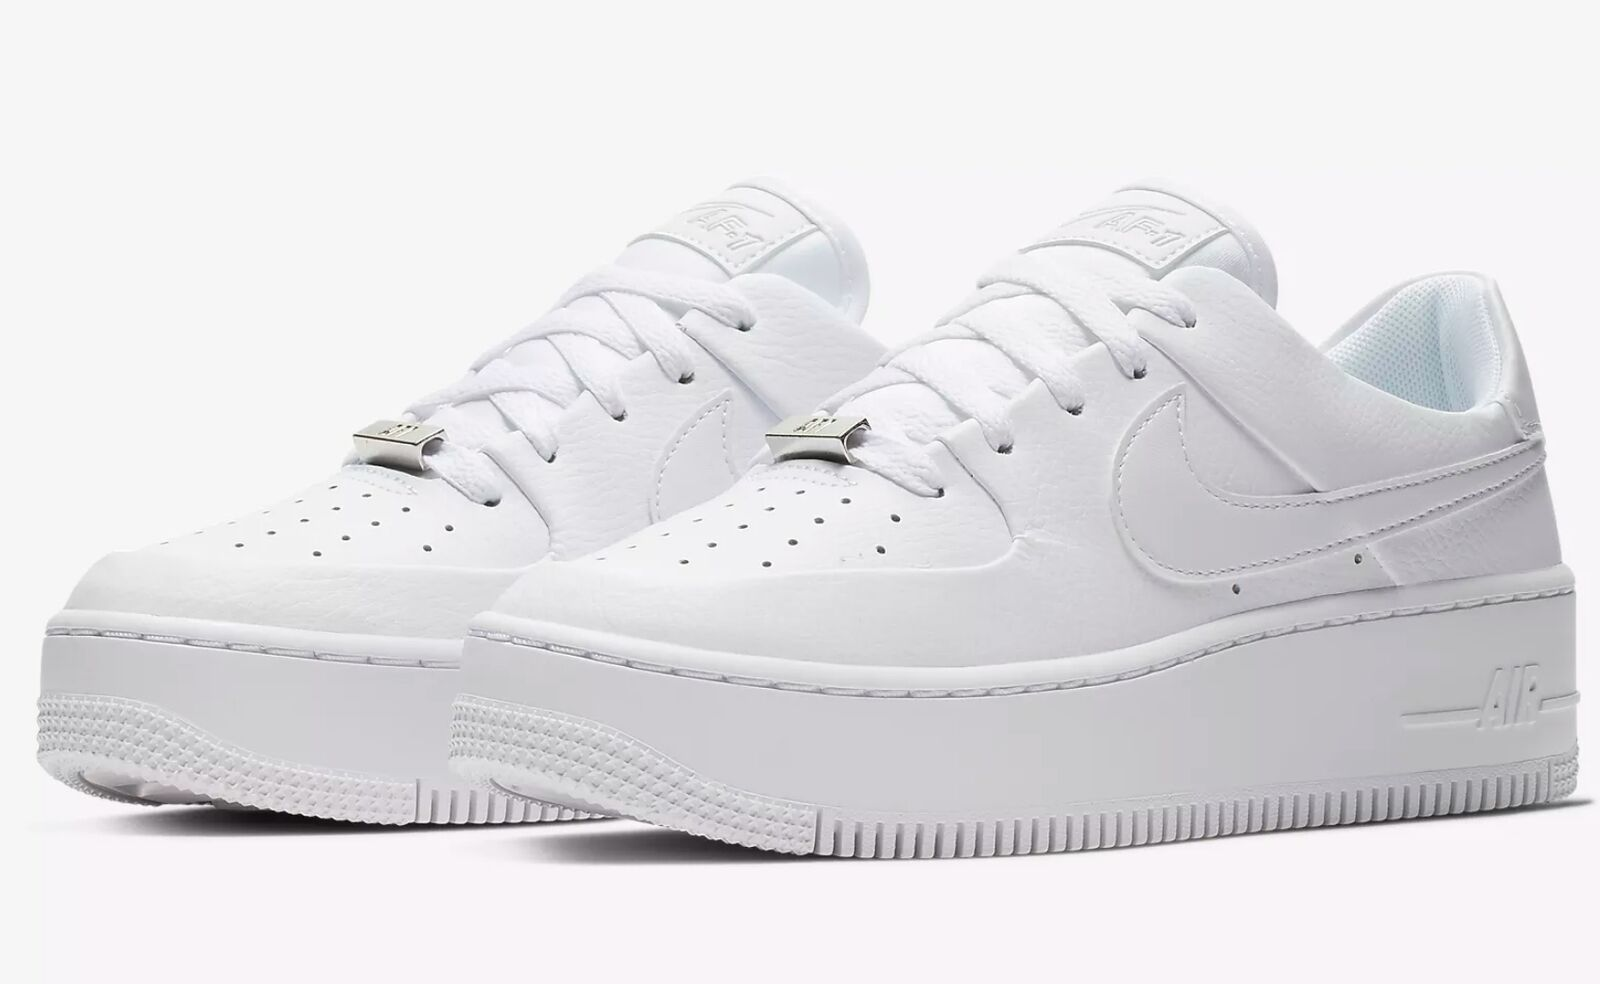 Nike Air Force 1 Sage Low Ar5339-100 Tripple White Womens Size 7